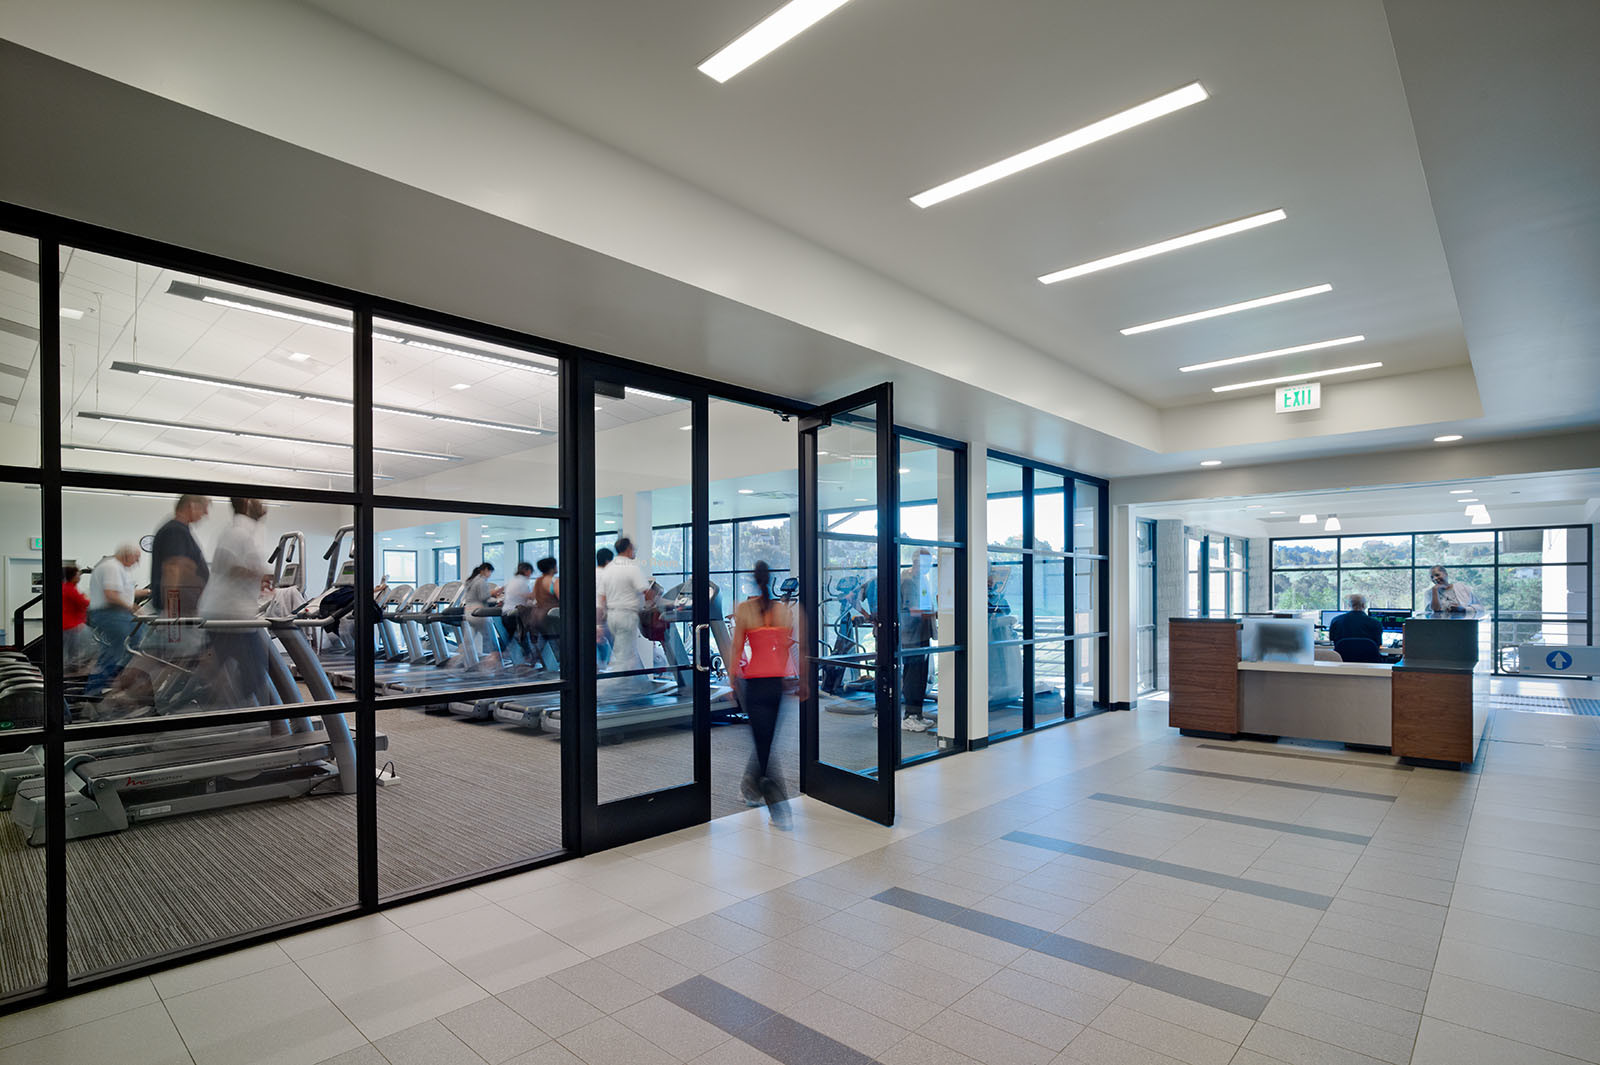 View of Weight room entrance Hilltop Family YMCA Richmond, CA fitness facility renovation ©brick-inc